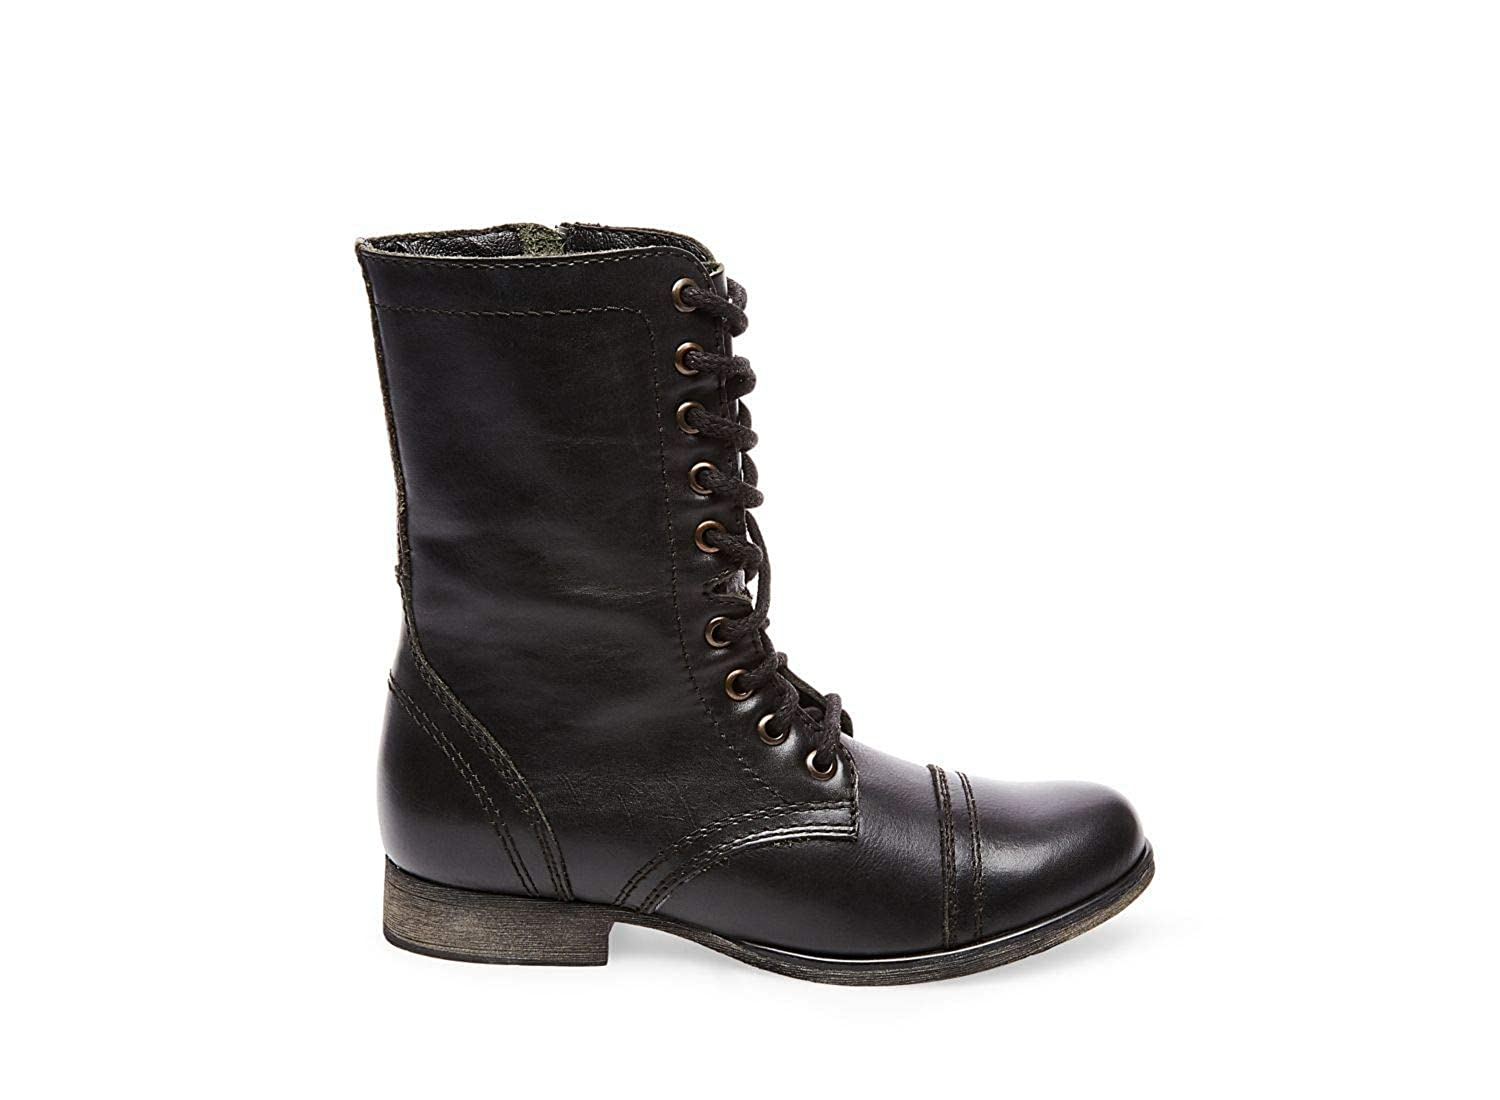 fdd5df1c393 Steve Madden Women's Troopa Lace-Up Boot